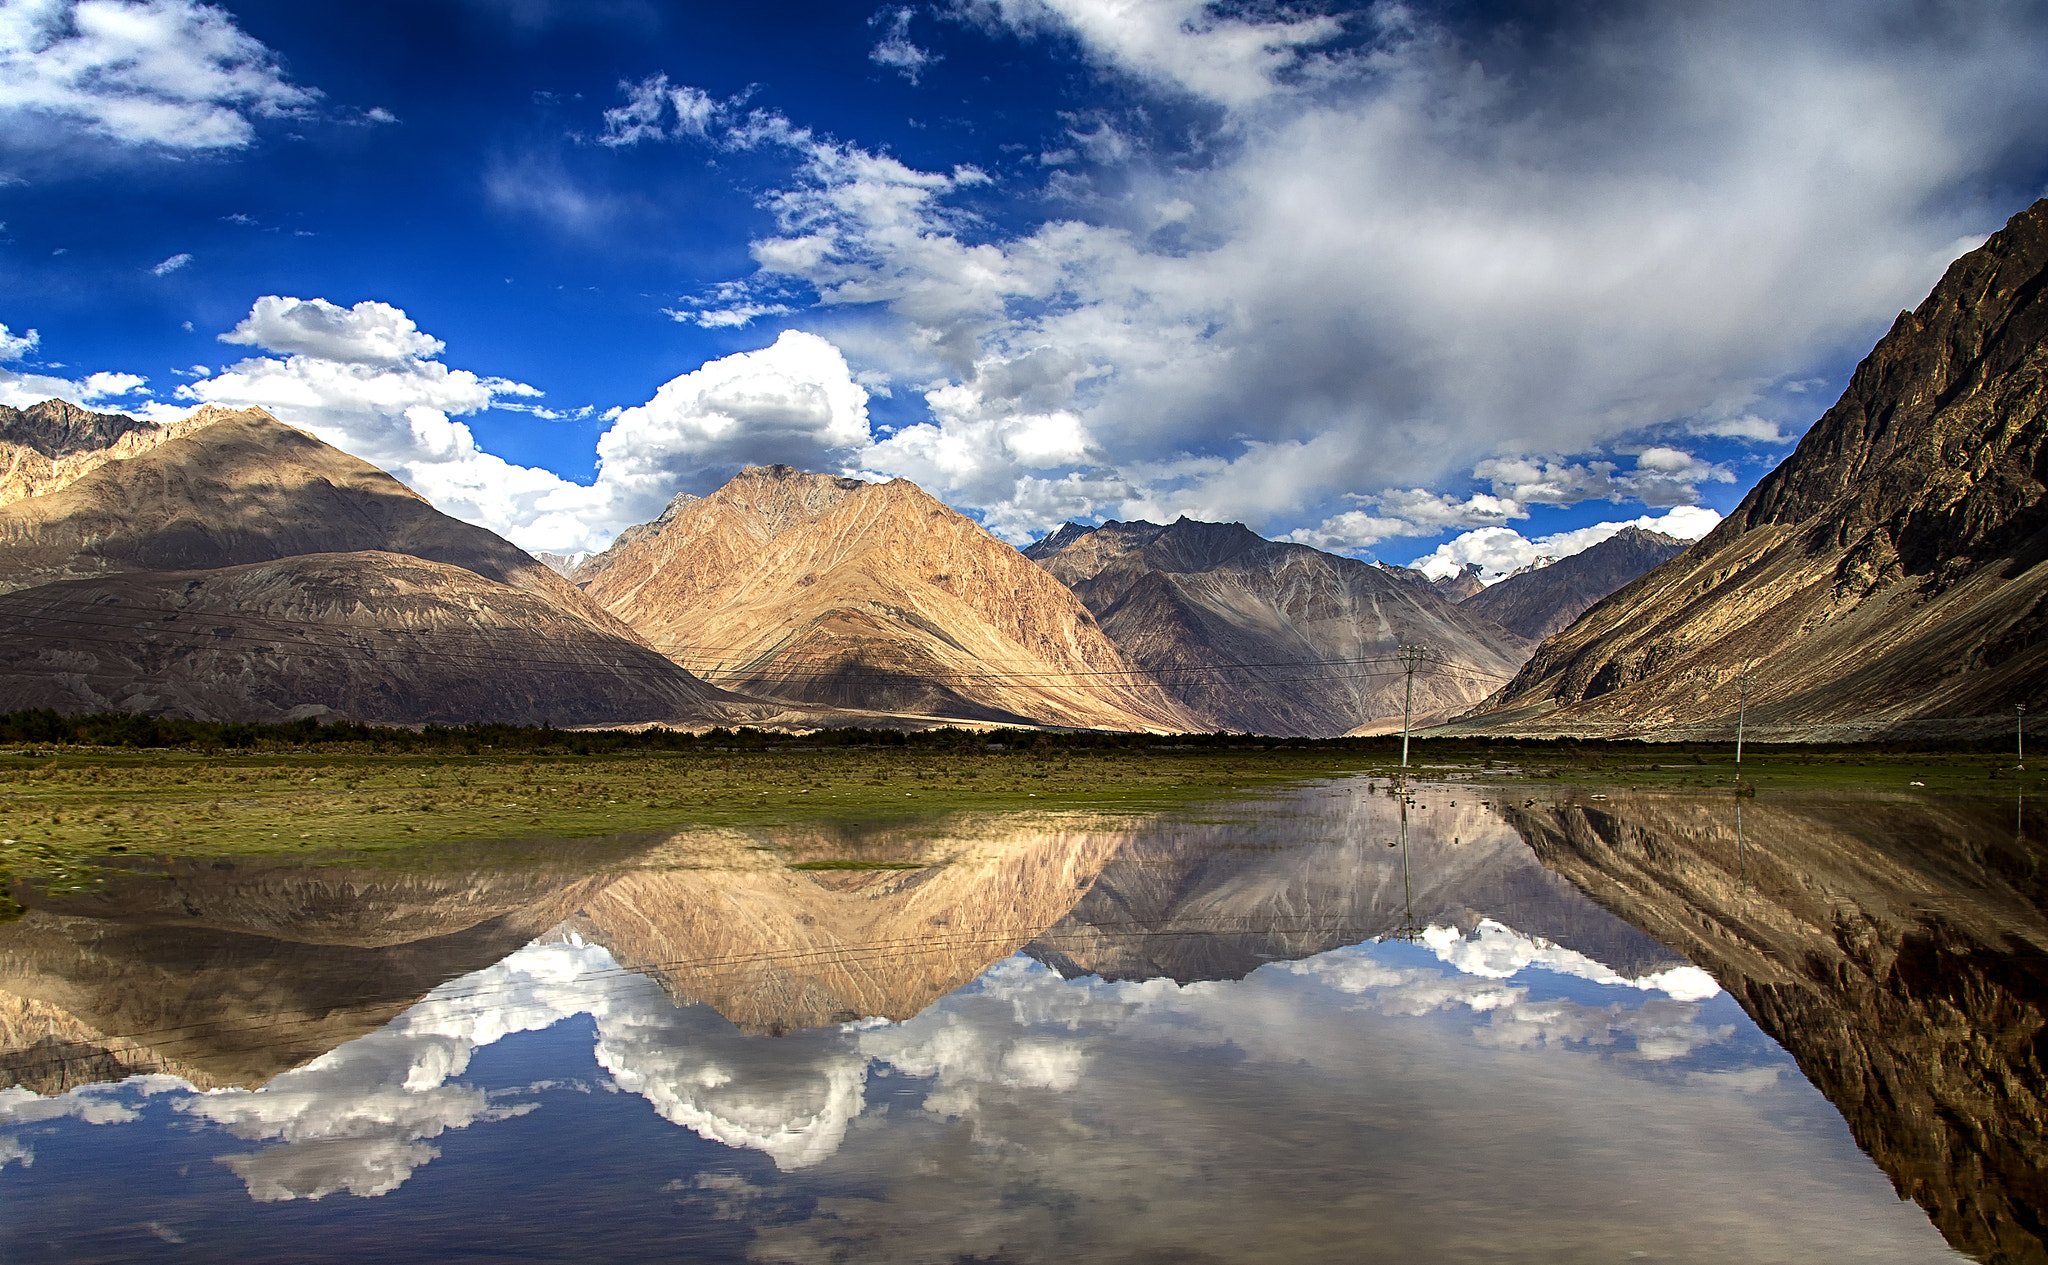 Photograph Reflections by Jassi Oberai on 500px